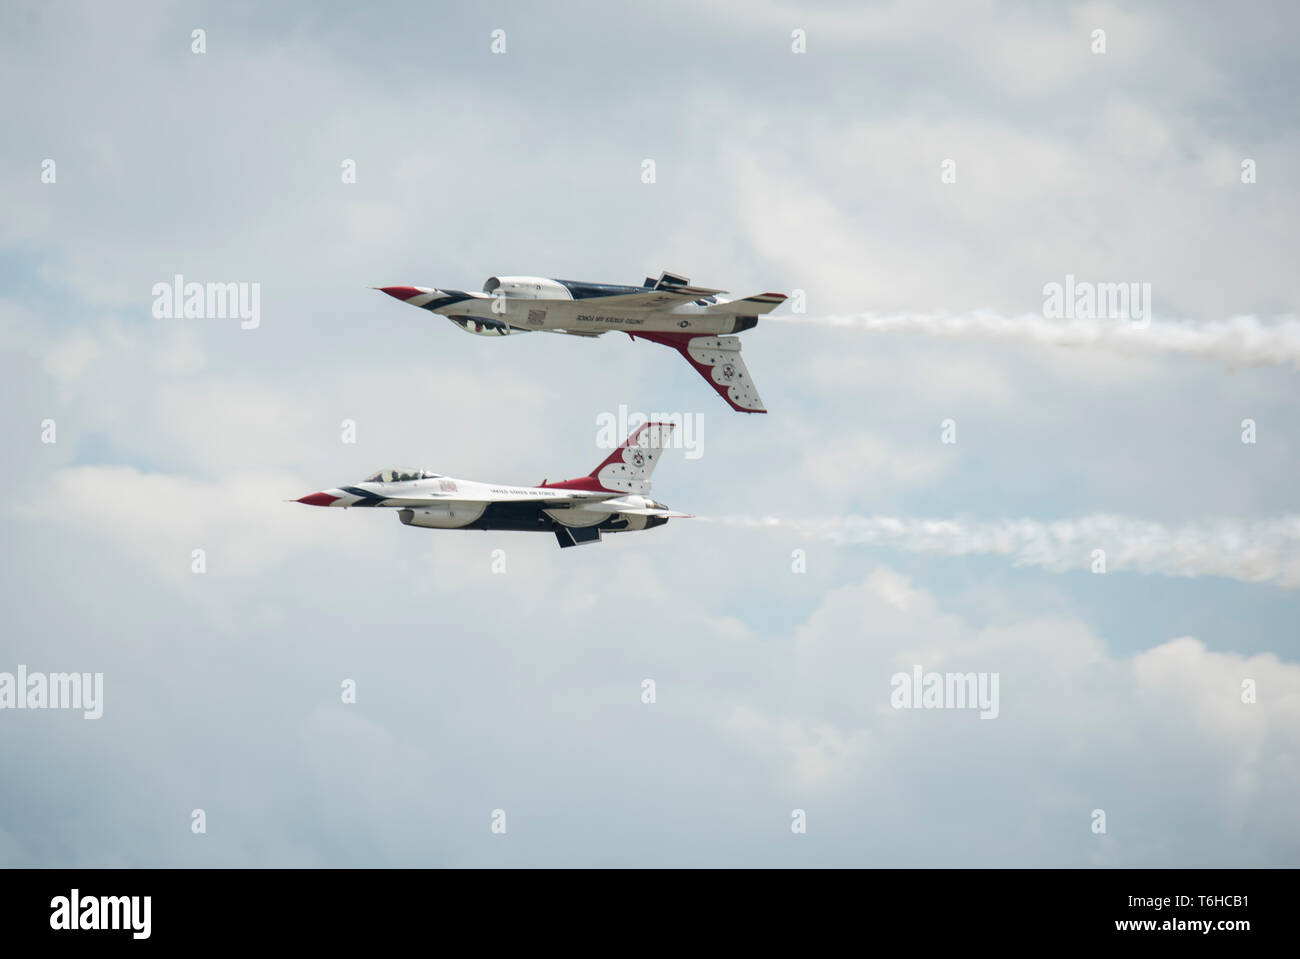 The Thunderbirds perform the Reflection Pass maneuver during the Wings Over Wayne Airshow, April 26, 2019, at Seymour Johnson Air Force Base, North Carolina. The Thunderbirds demonstrated the versatility of the F-16 Fighting Falcon by performing aerial acrobatics, precision formations and high-speed passes during their performance. (U.S. Air Force photo by Senior Airman Miranda A. Loera) - Stock Image